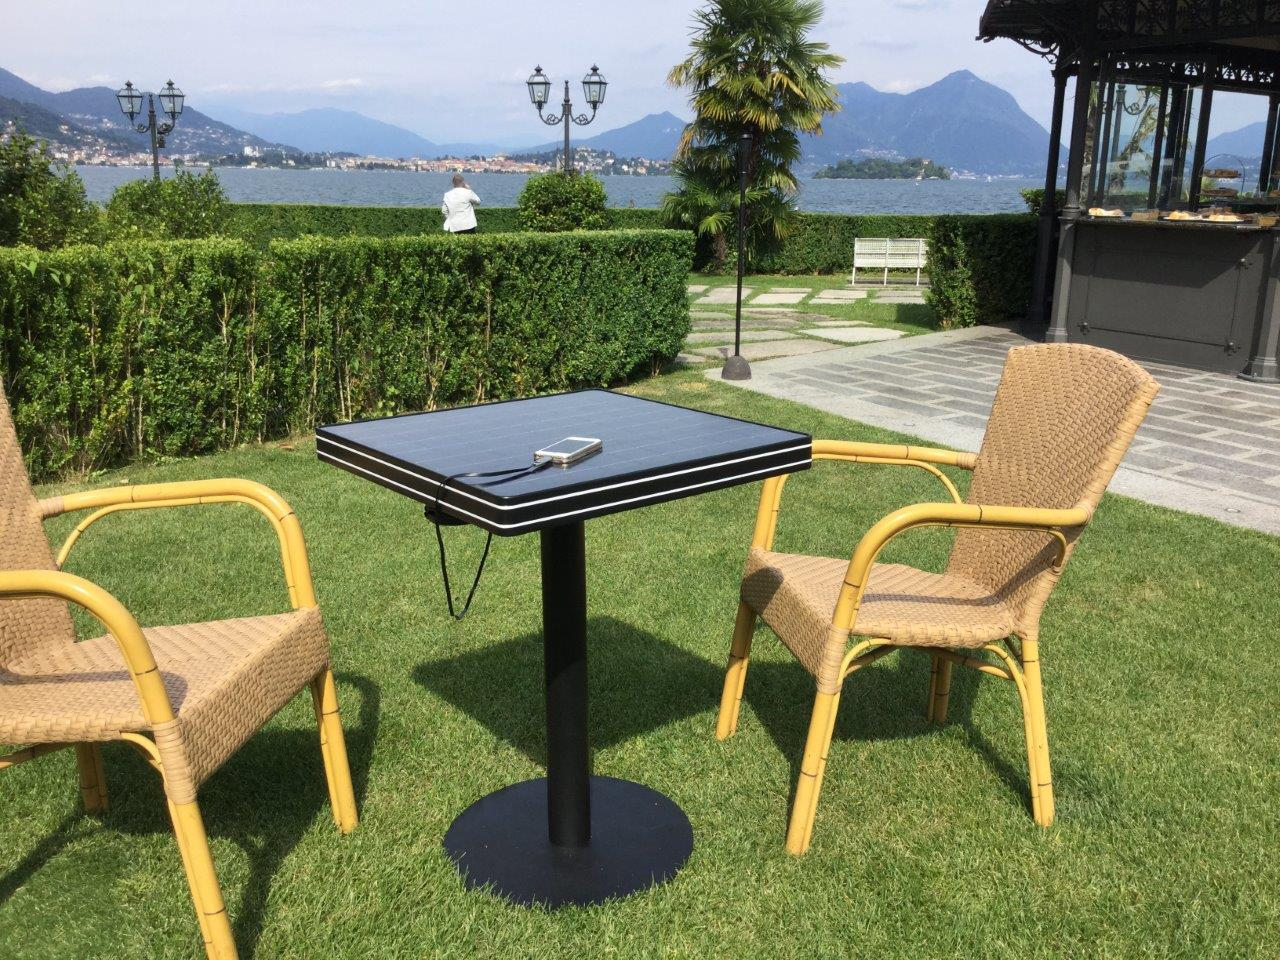 Sol NRG charging table